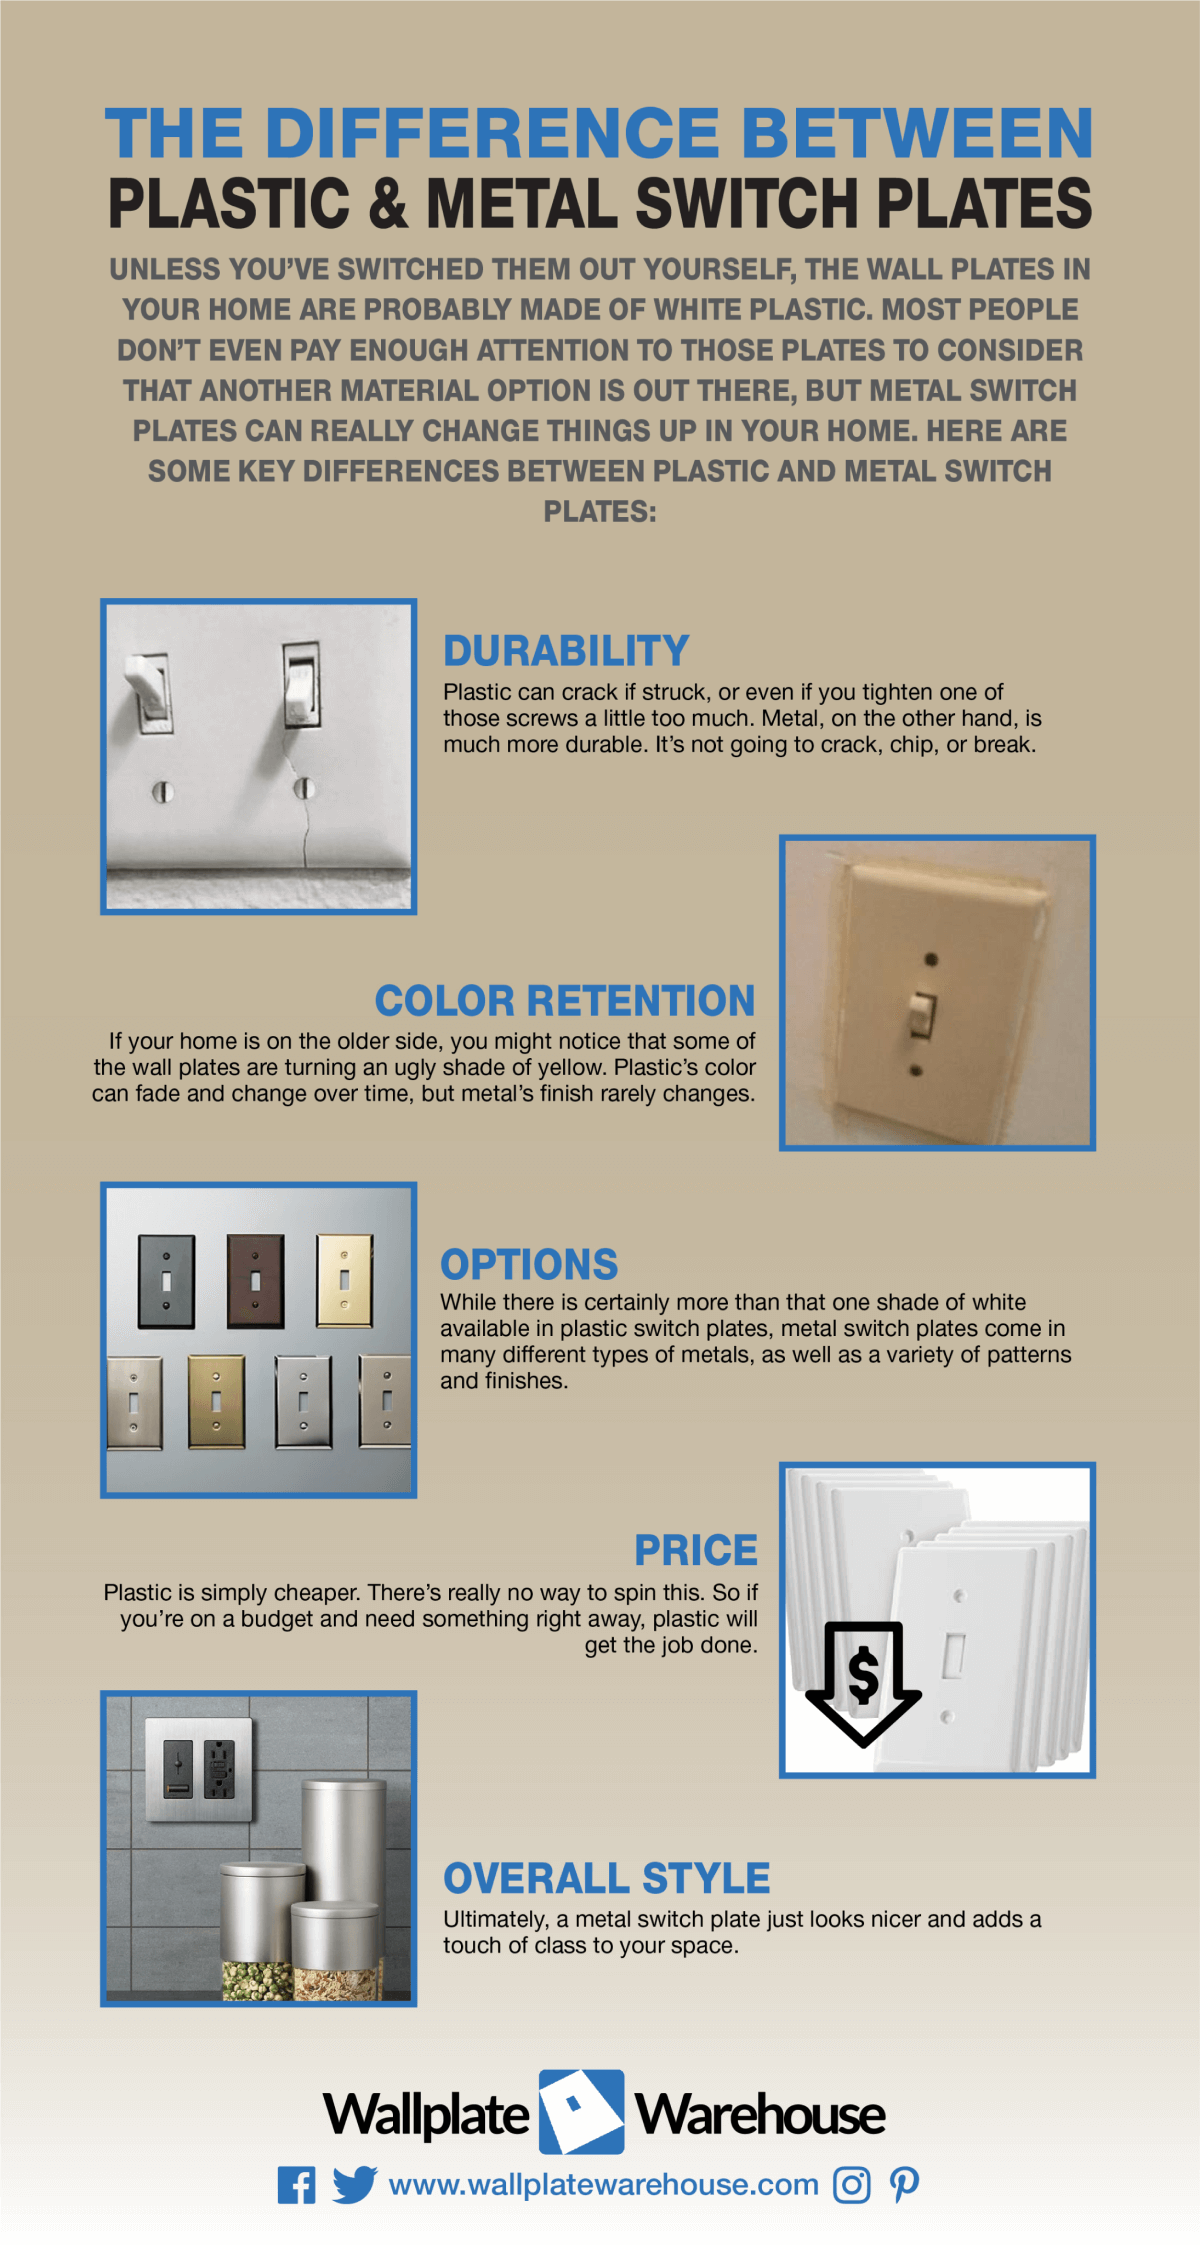 The Differences between Plastic and Metal Switch Plates